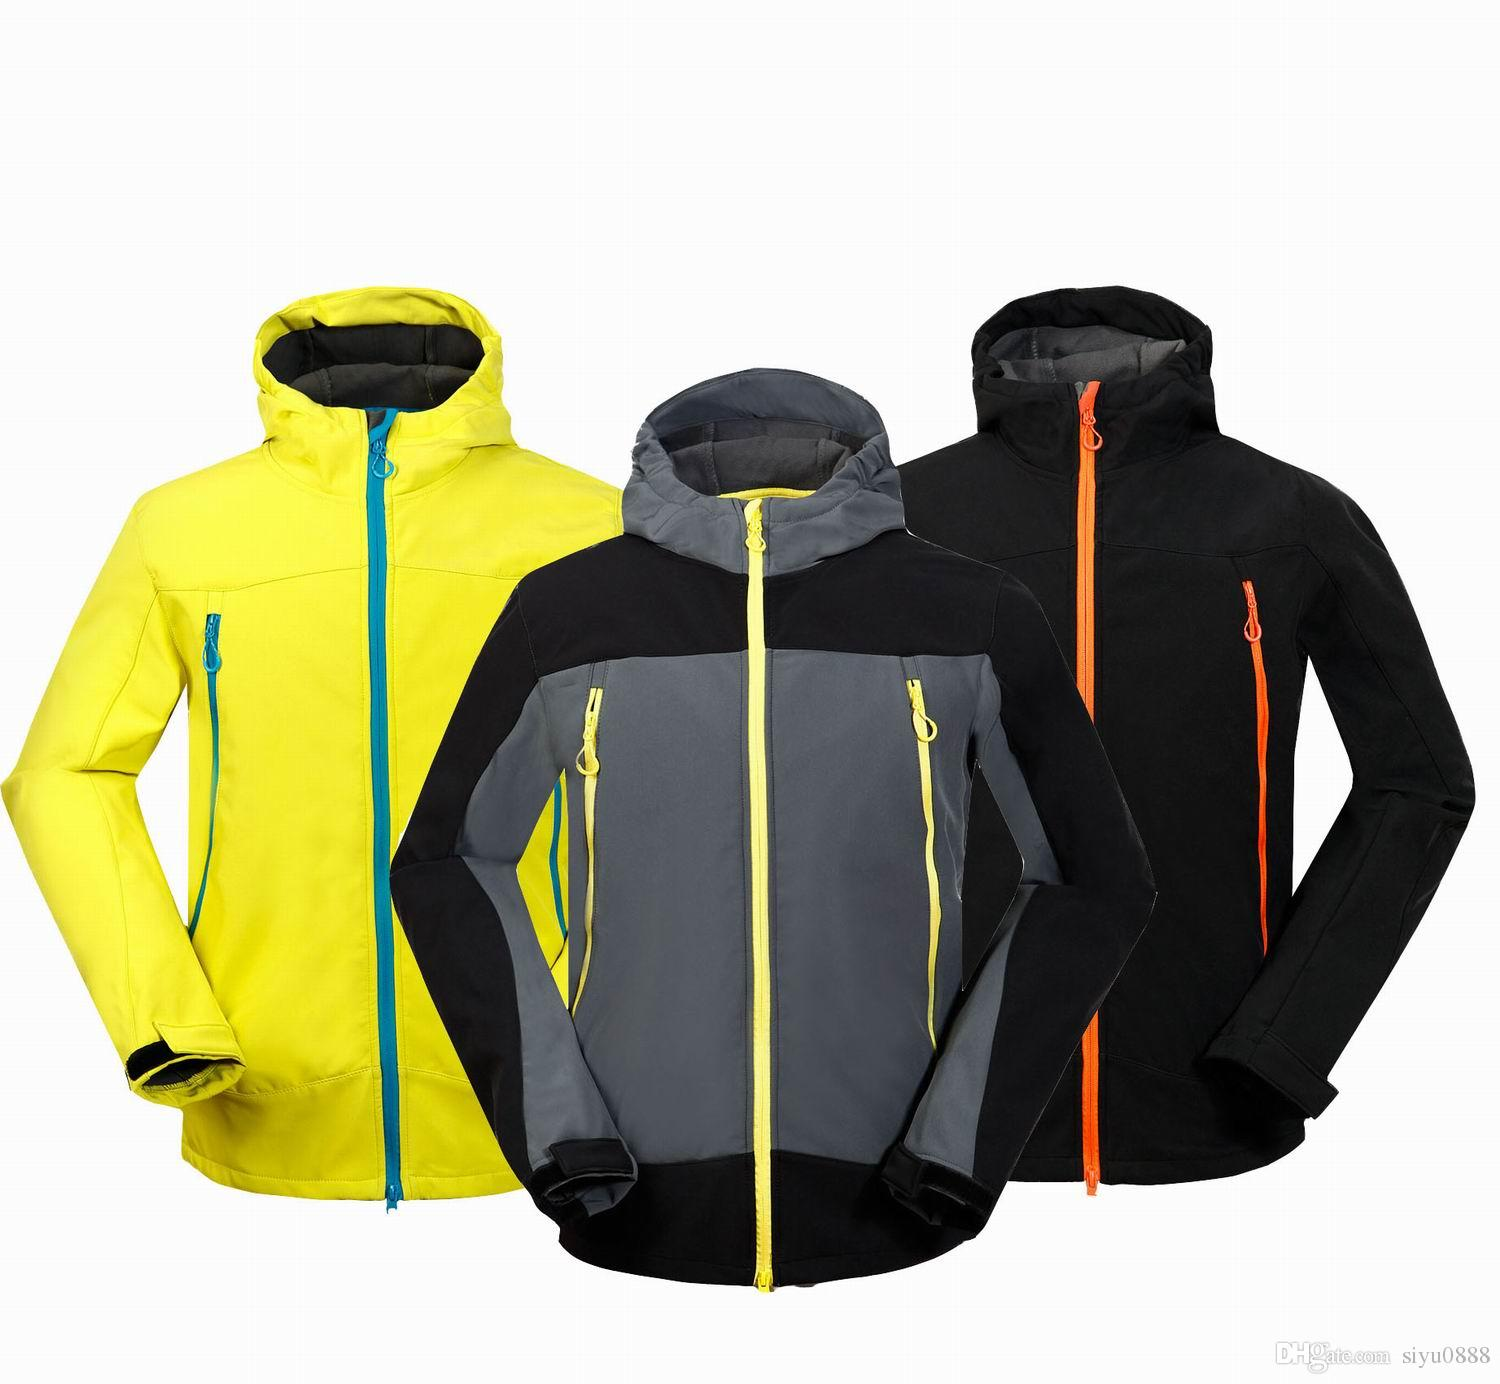 95177c90a635d Wholesale-Men Waterproof Breathable Softshell Jacket Men Outdoors Sports  Coats Ski Hiking Windproof Spring Outwear S 2XL FREE SHIP  1651 Breathable  ...